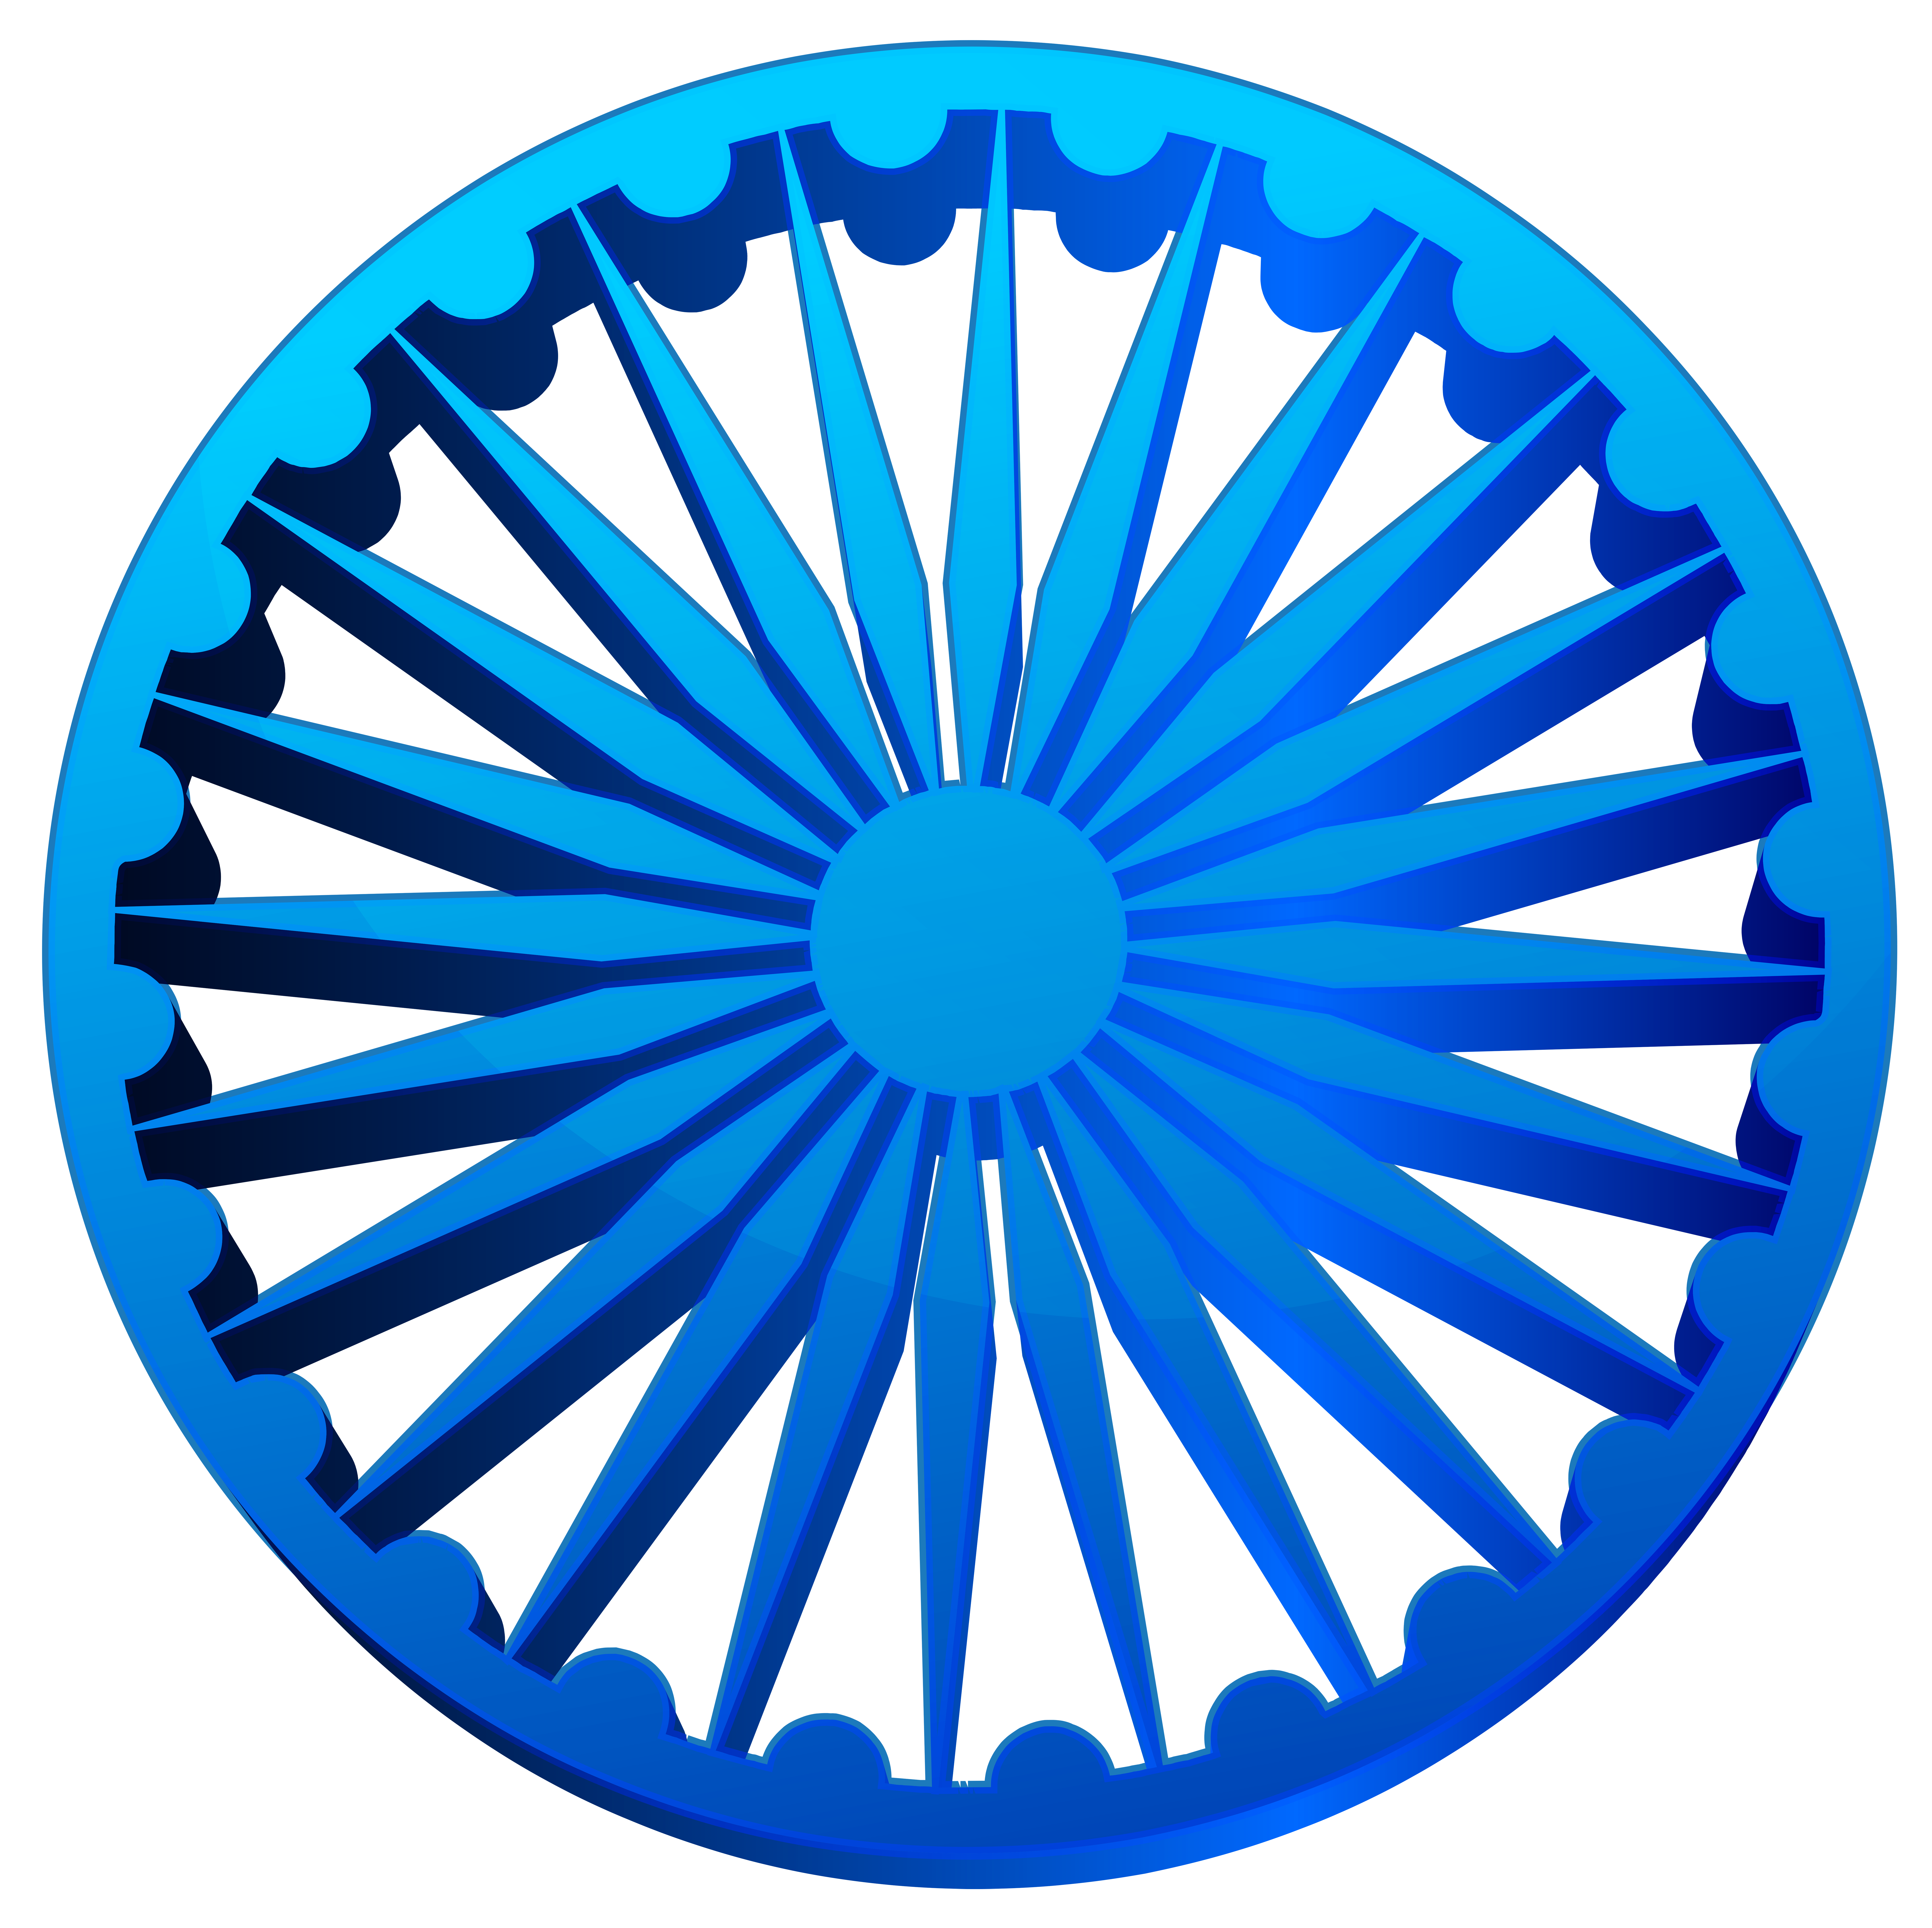 8000x7984 Ashoka Chakra India Transparent Png Clip Art Imageu200b Gallery